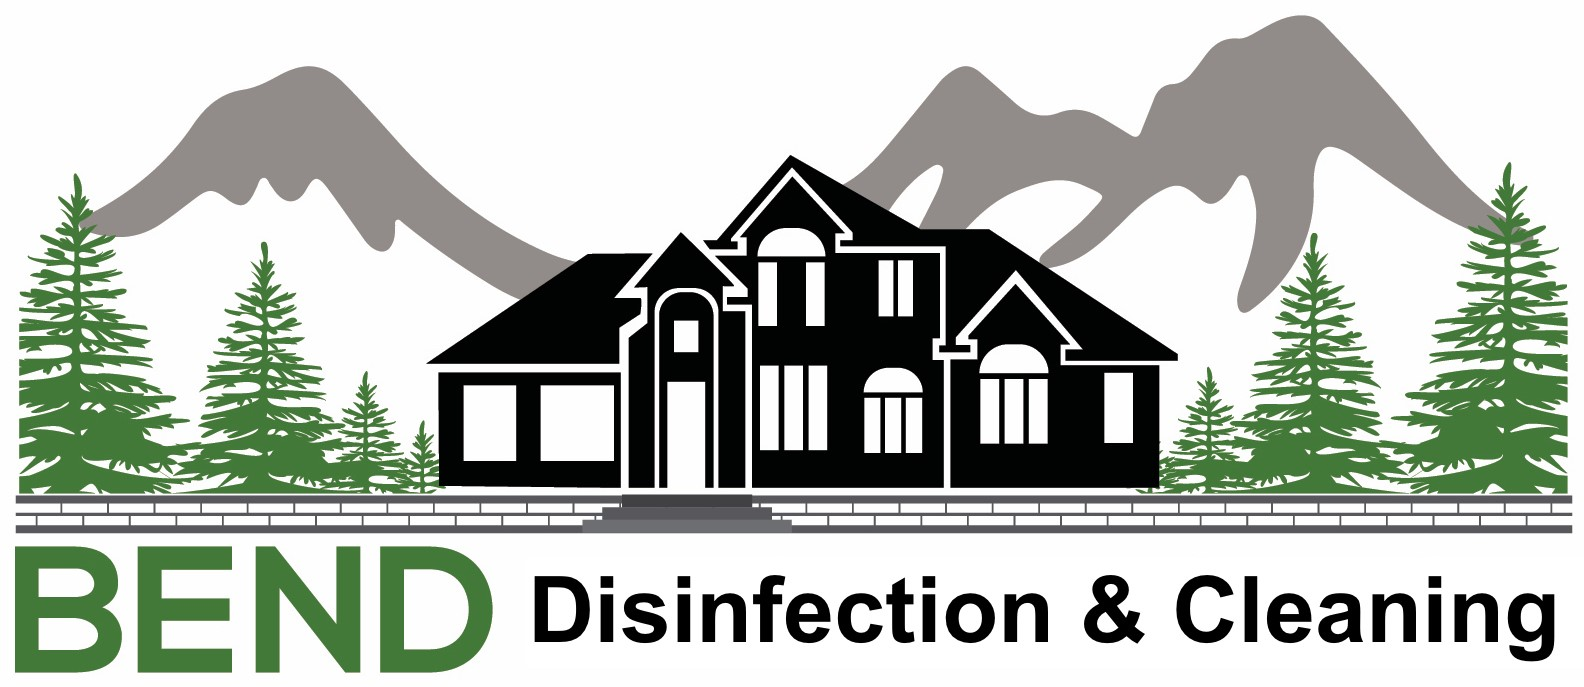 bend disinfection